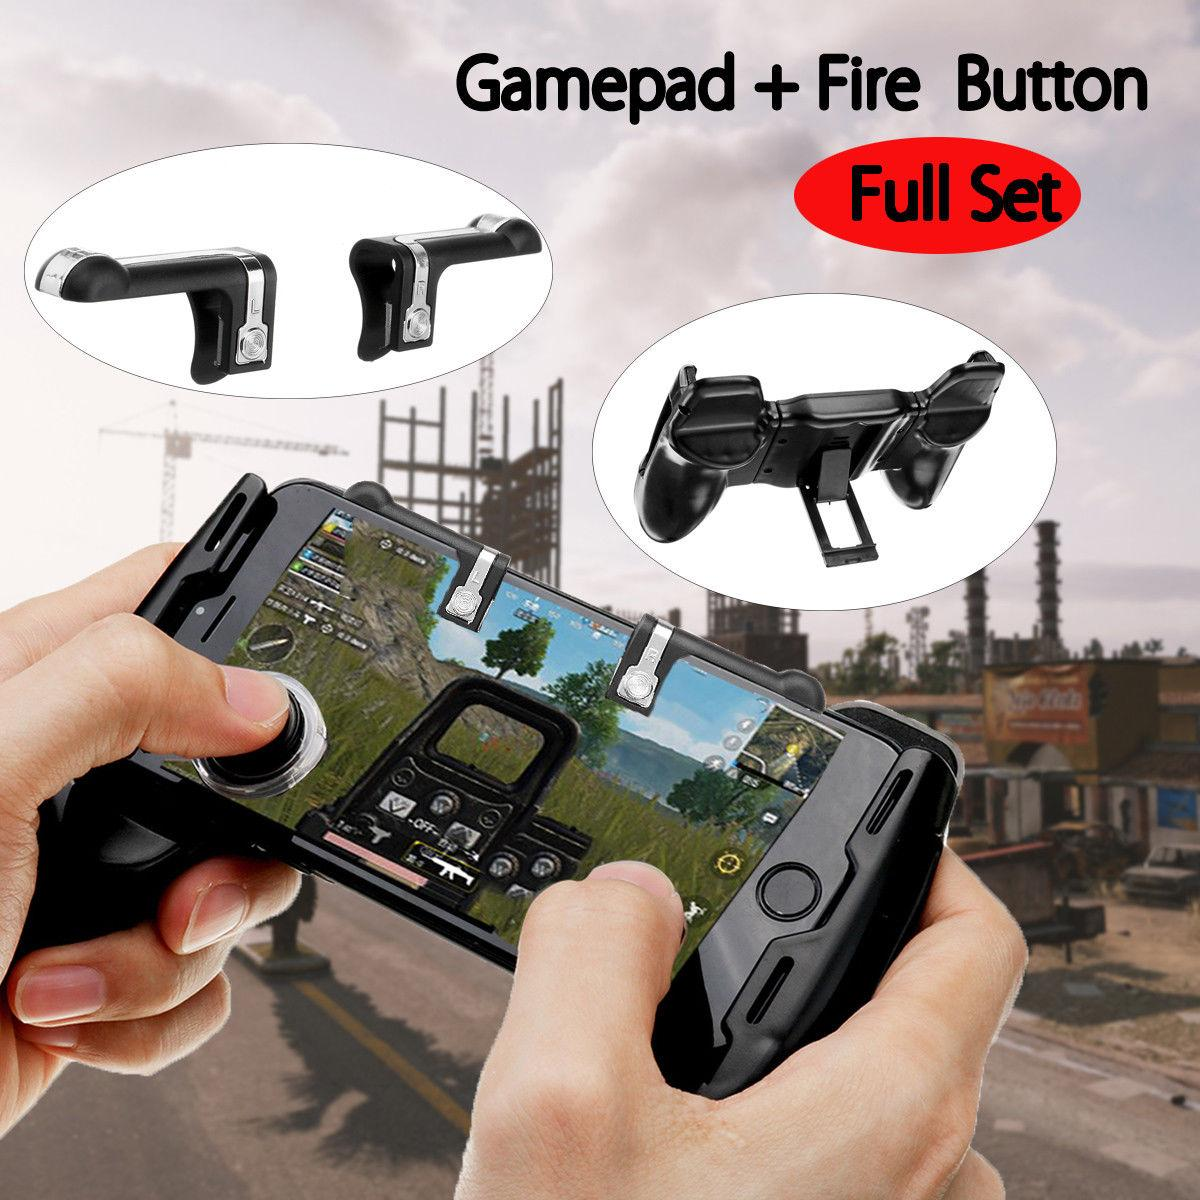 V6.0 L1R1 Sharpshooter Gaming Trigger Fire Button Aim Key Phone Shooter Controller PUBG + Gaming Joystick Handle Holder Controller for Games on iPhone and Android